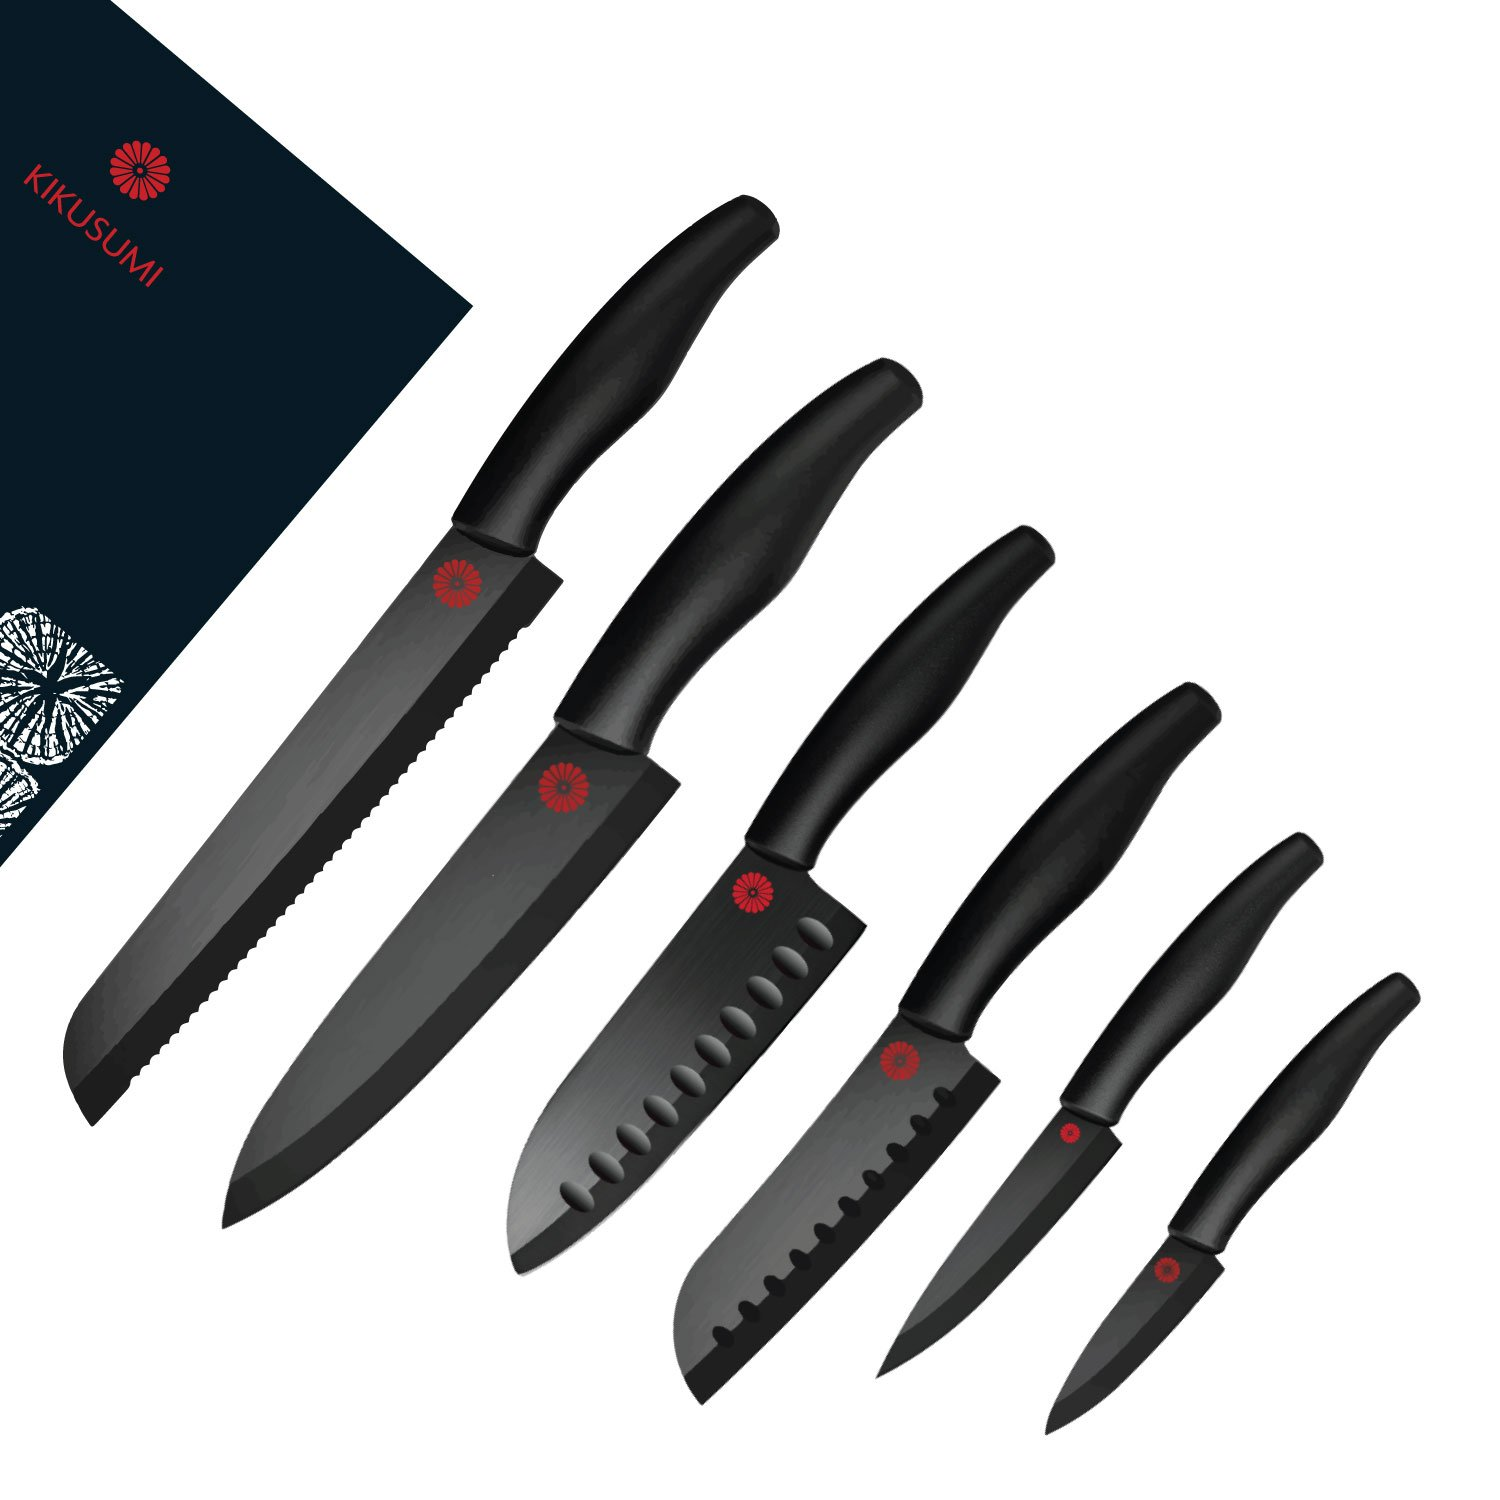 Kikusumi 6-Piece Chef Knife Gift Set Bundle -SUMI Black Handle + Black Ceramic Blade - 7 inch Chef Knife + 5.5 inch Santoku + 5 inch mini Santoku + 4 inch Paring + 3 inch Paring + 6 Sheath (Black)